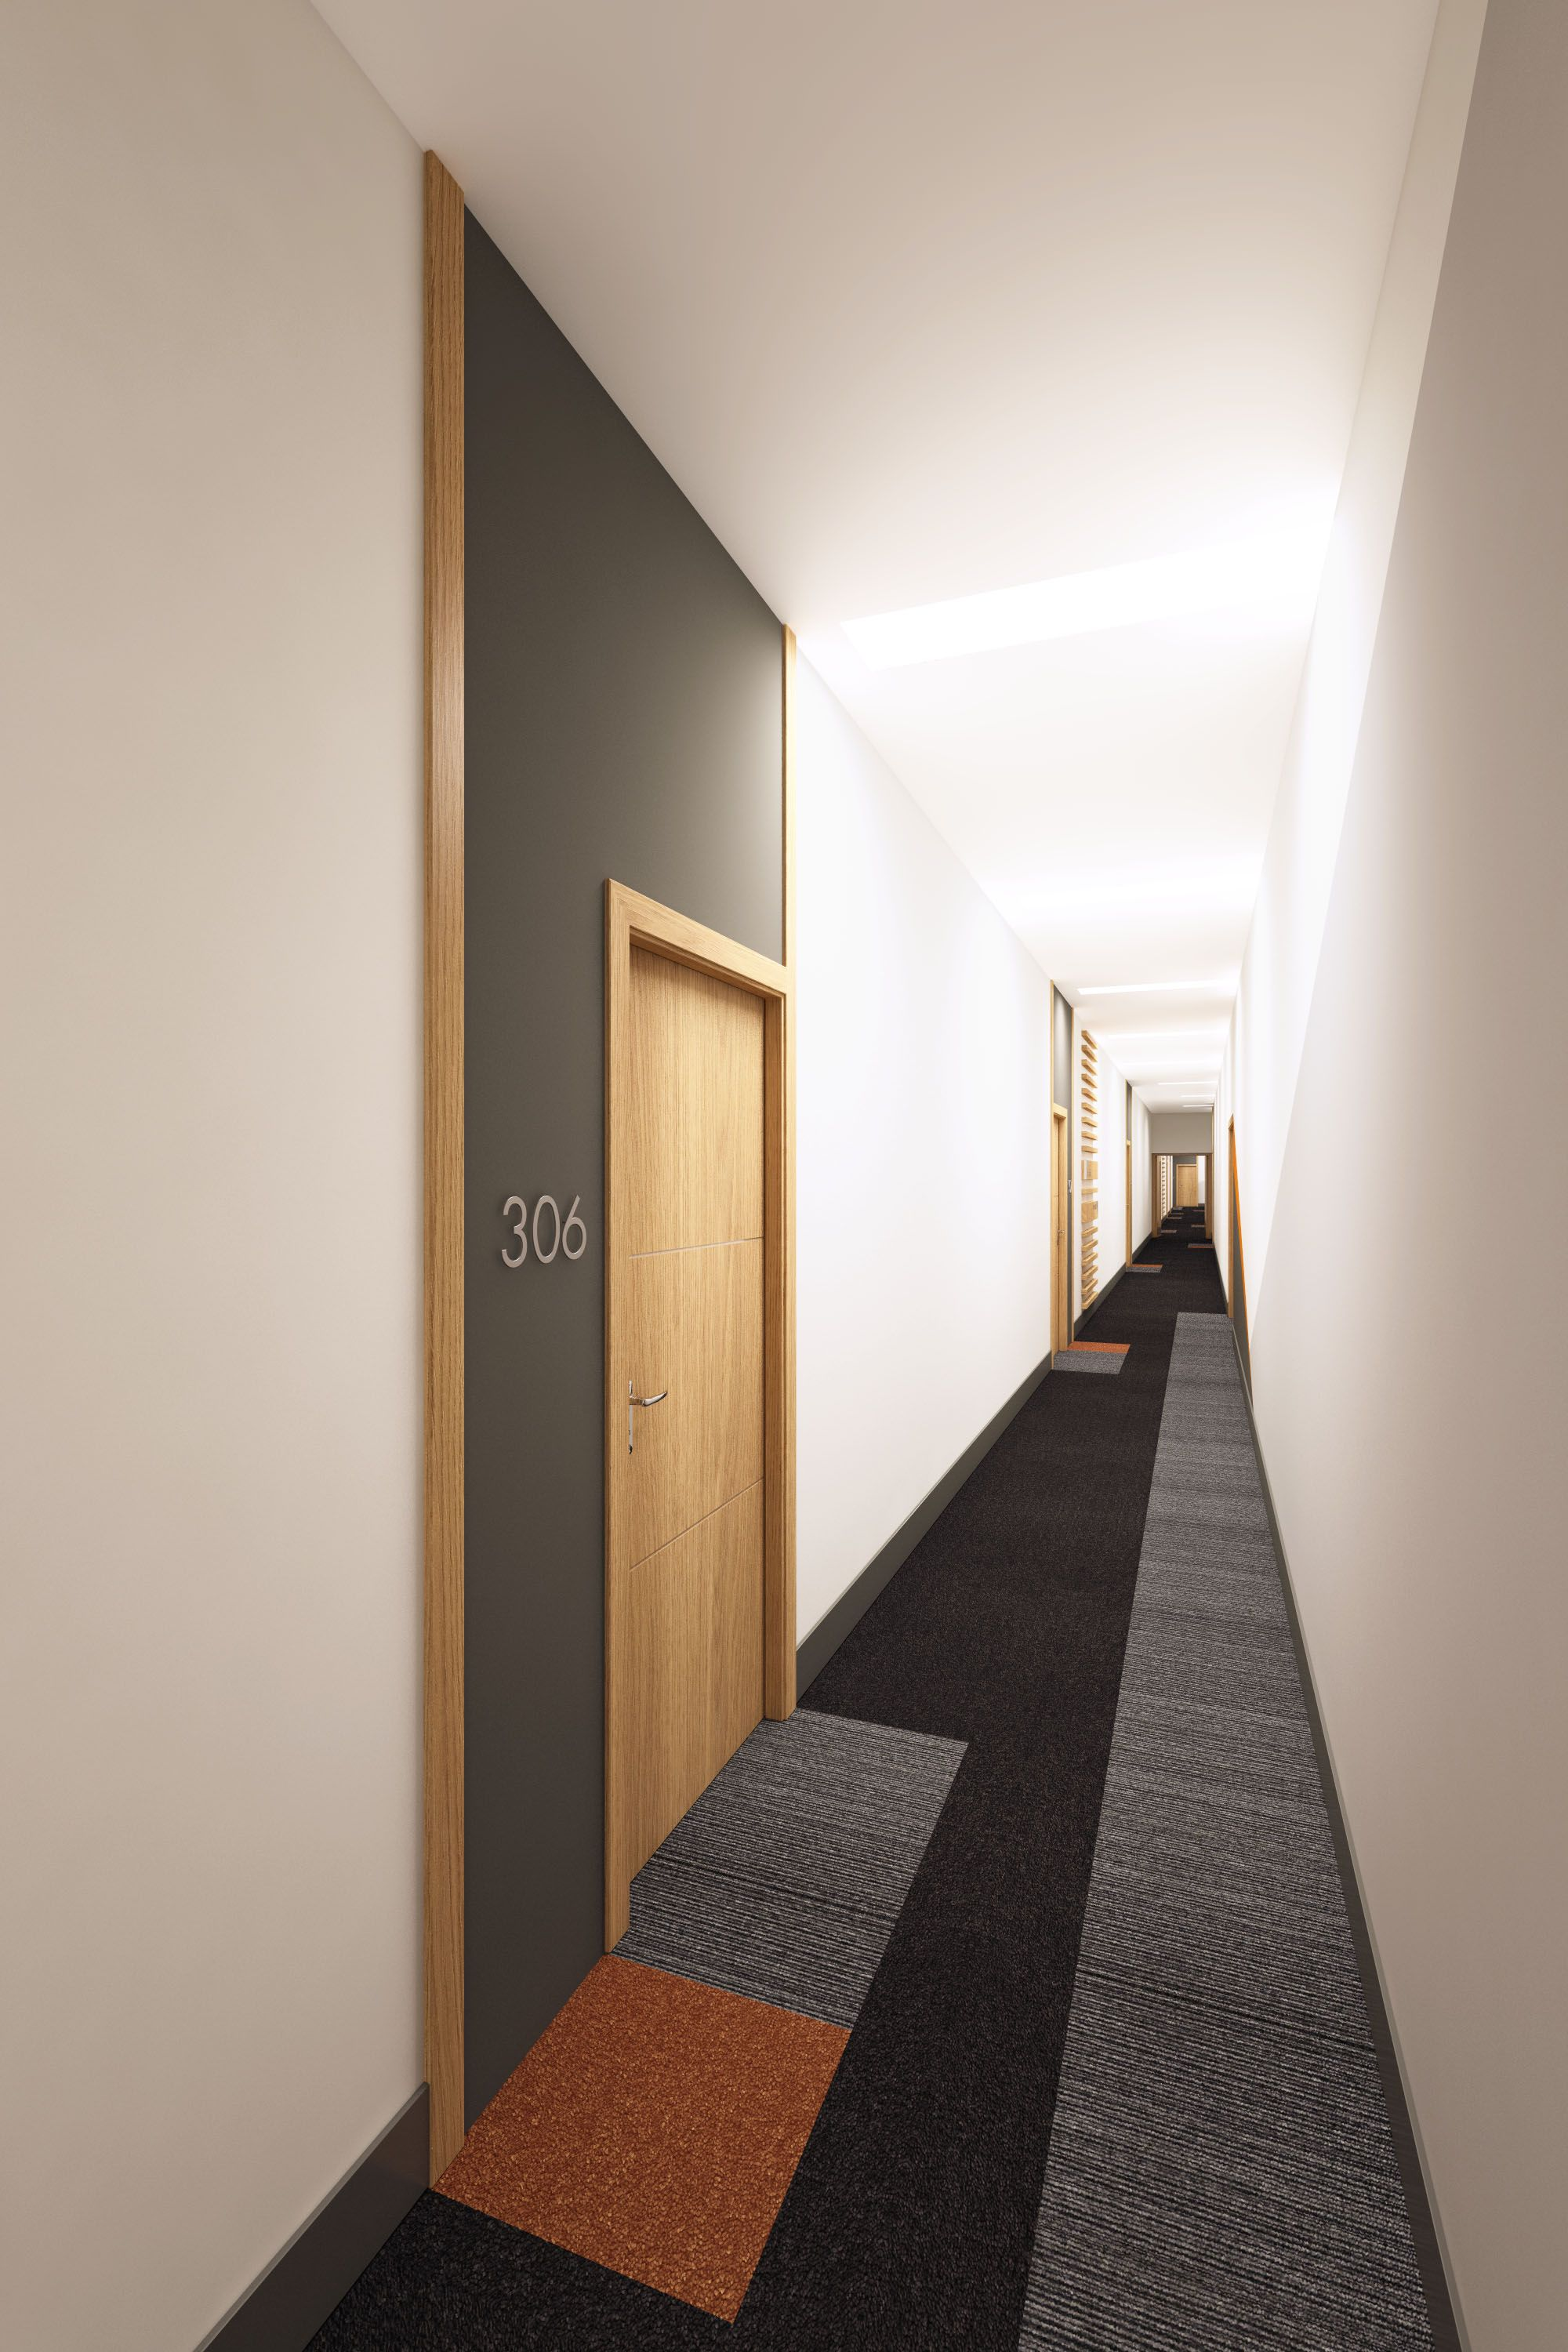 Crave id queens dock apartment corridor home decor for Aterrizaje del corredor de entrada deco